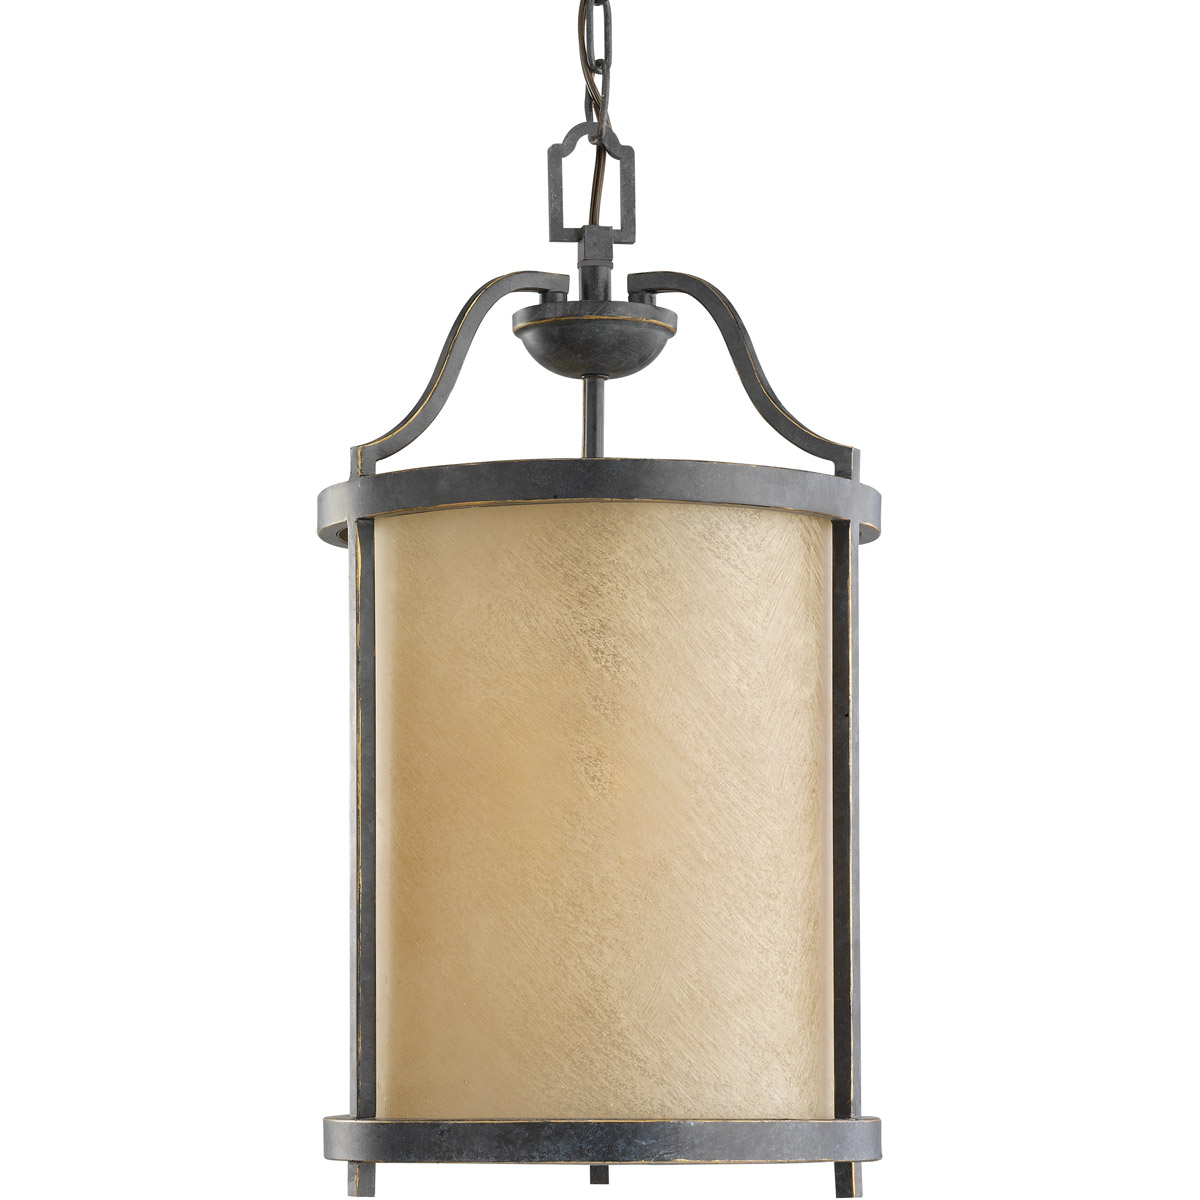 Sea Gull Lighting Roslyn 1 Light Pendant in Flemish Bronze 51520-845 photo